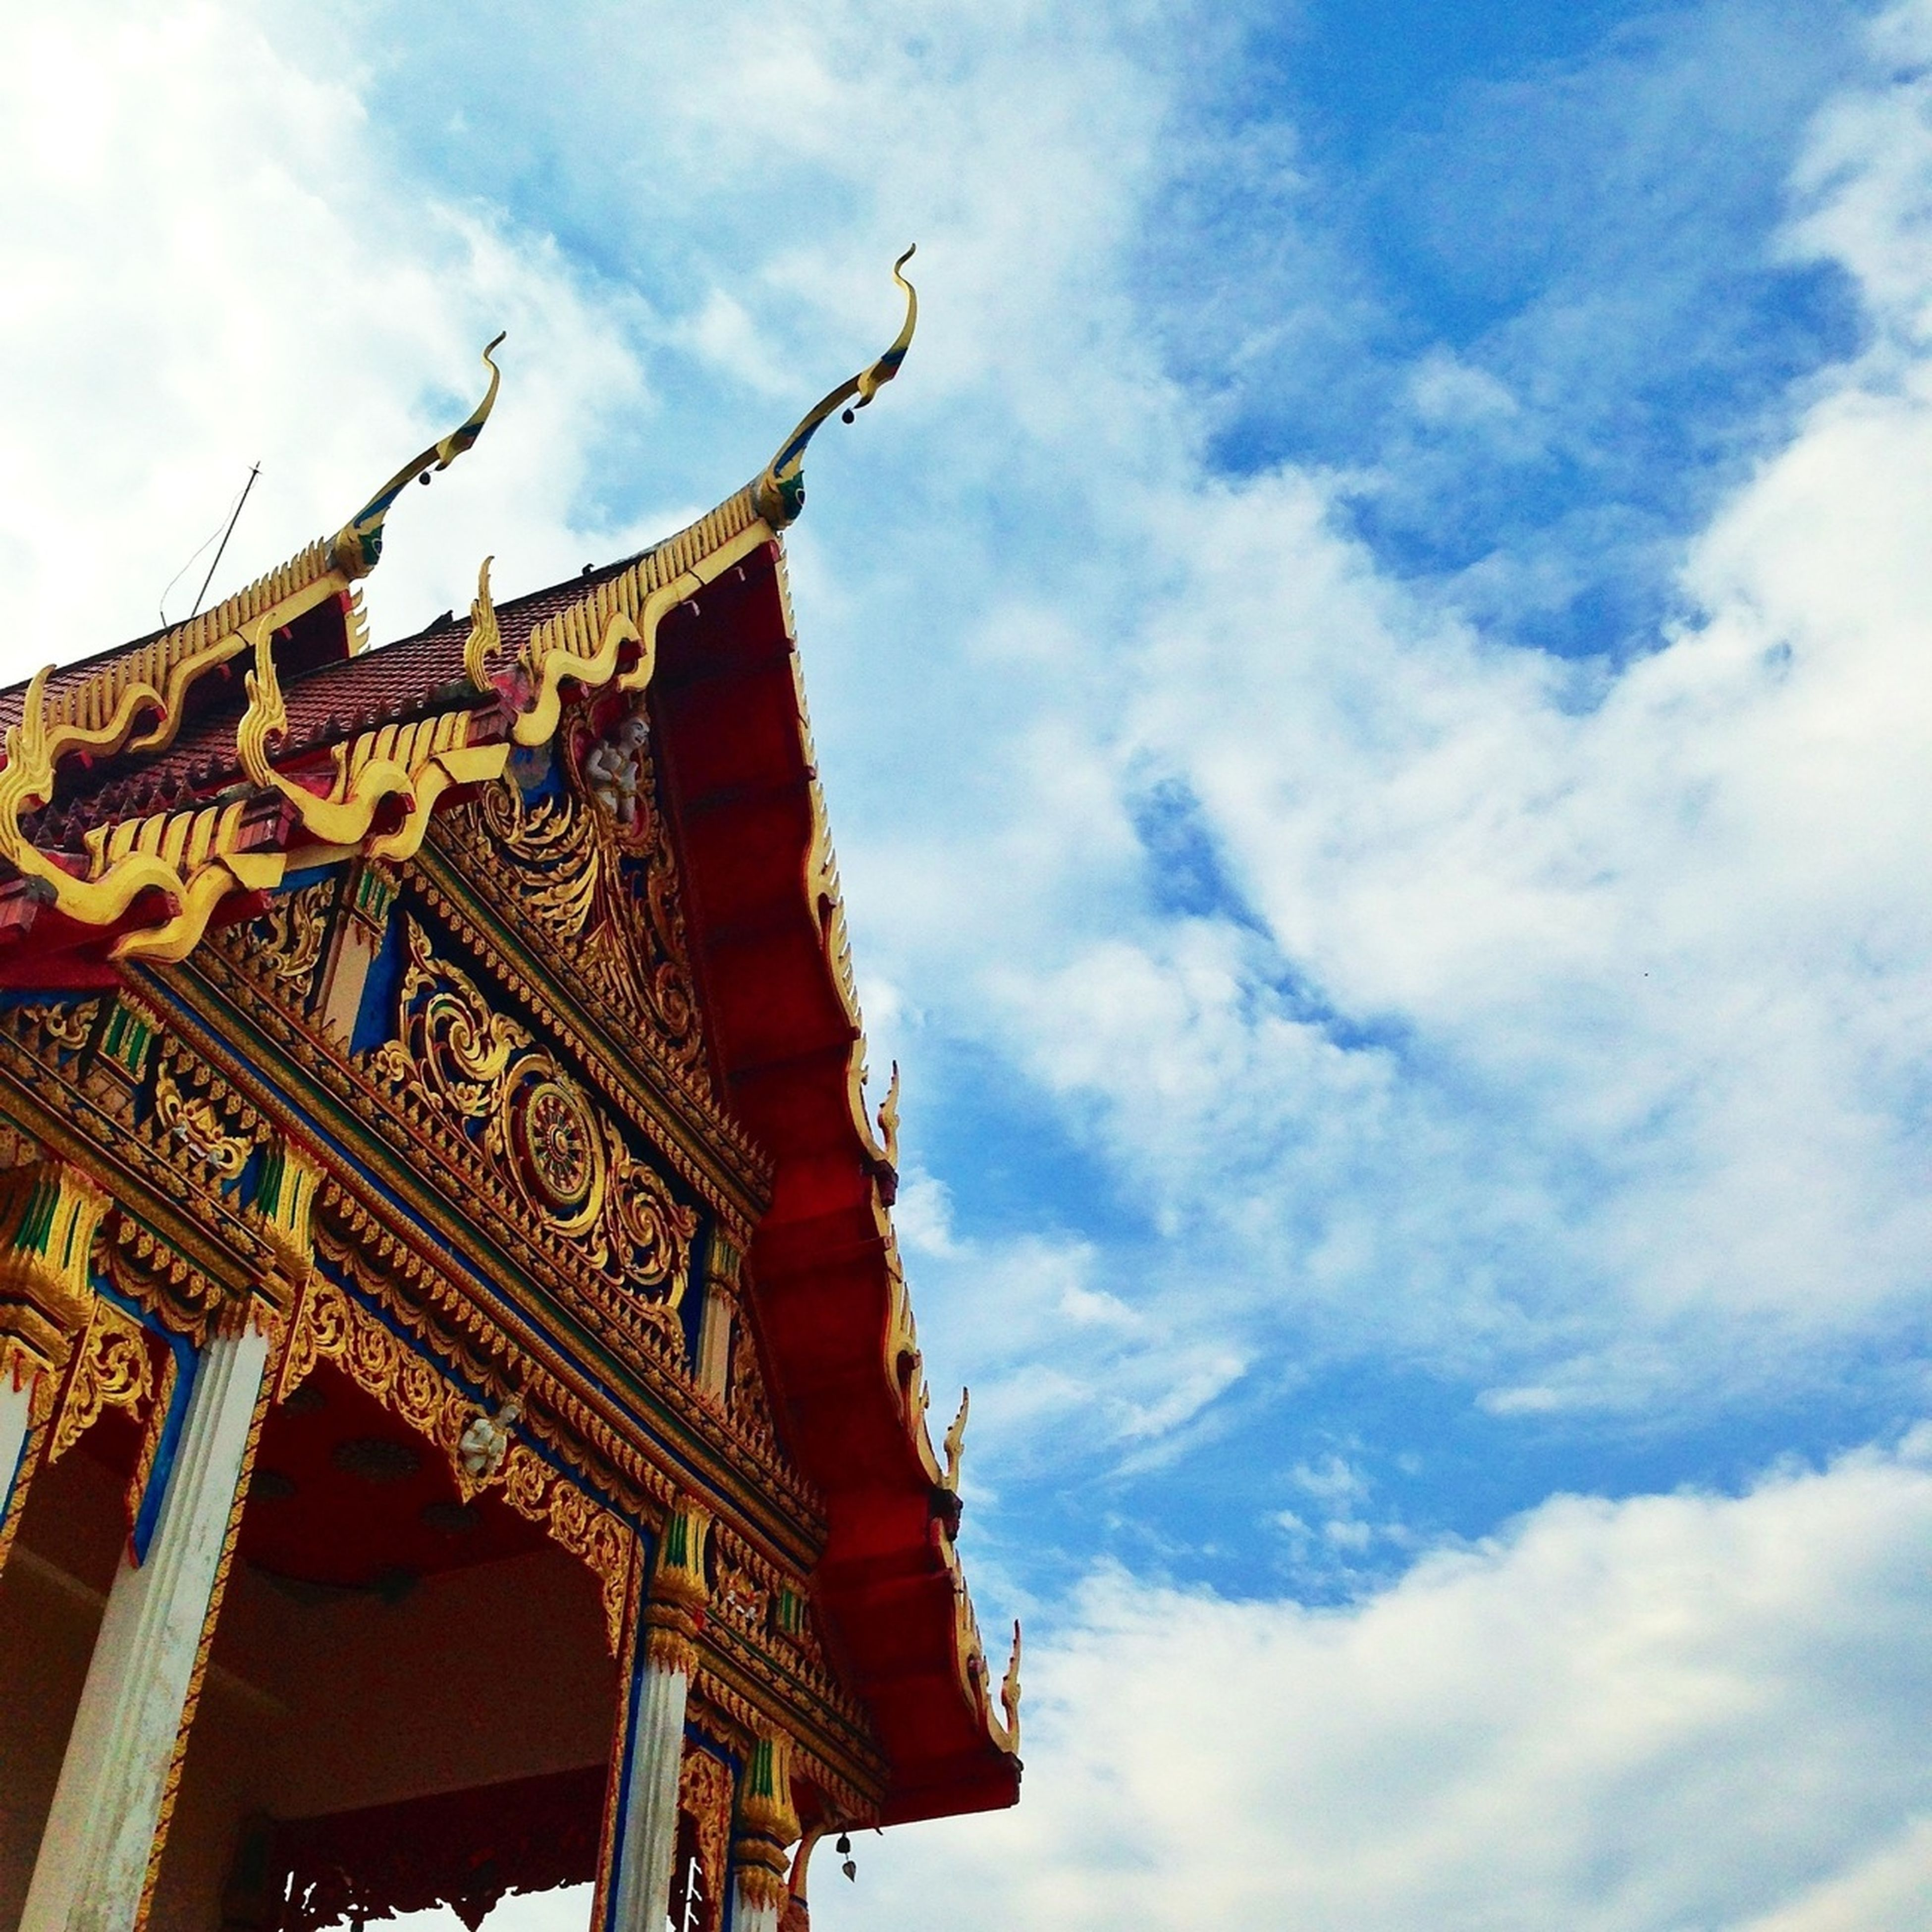 low angle view, architecture, built structure, building exterior, sky, place of worship, religion, spirituality, famous place, cloud - sky, temple - building, travel destinations, history, ornate, cloud, tourism, art and craft, travel, cultures